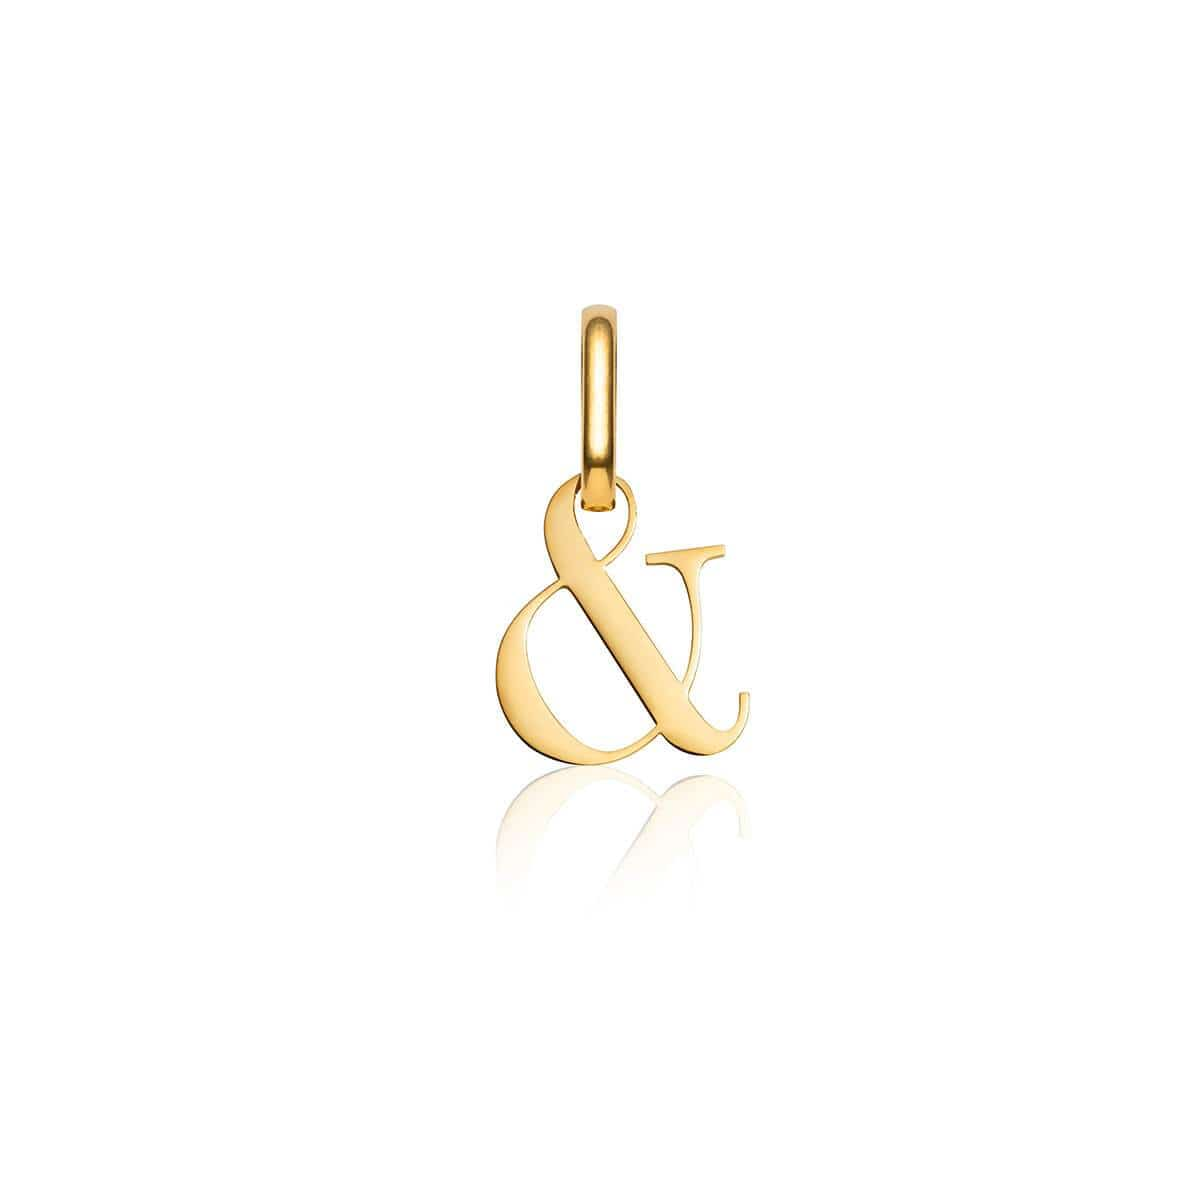 & Pendant (Yellow Gold)